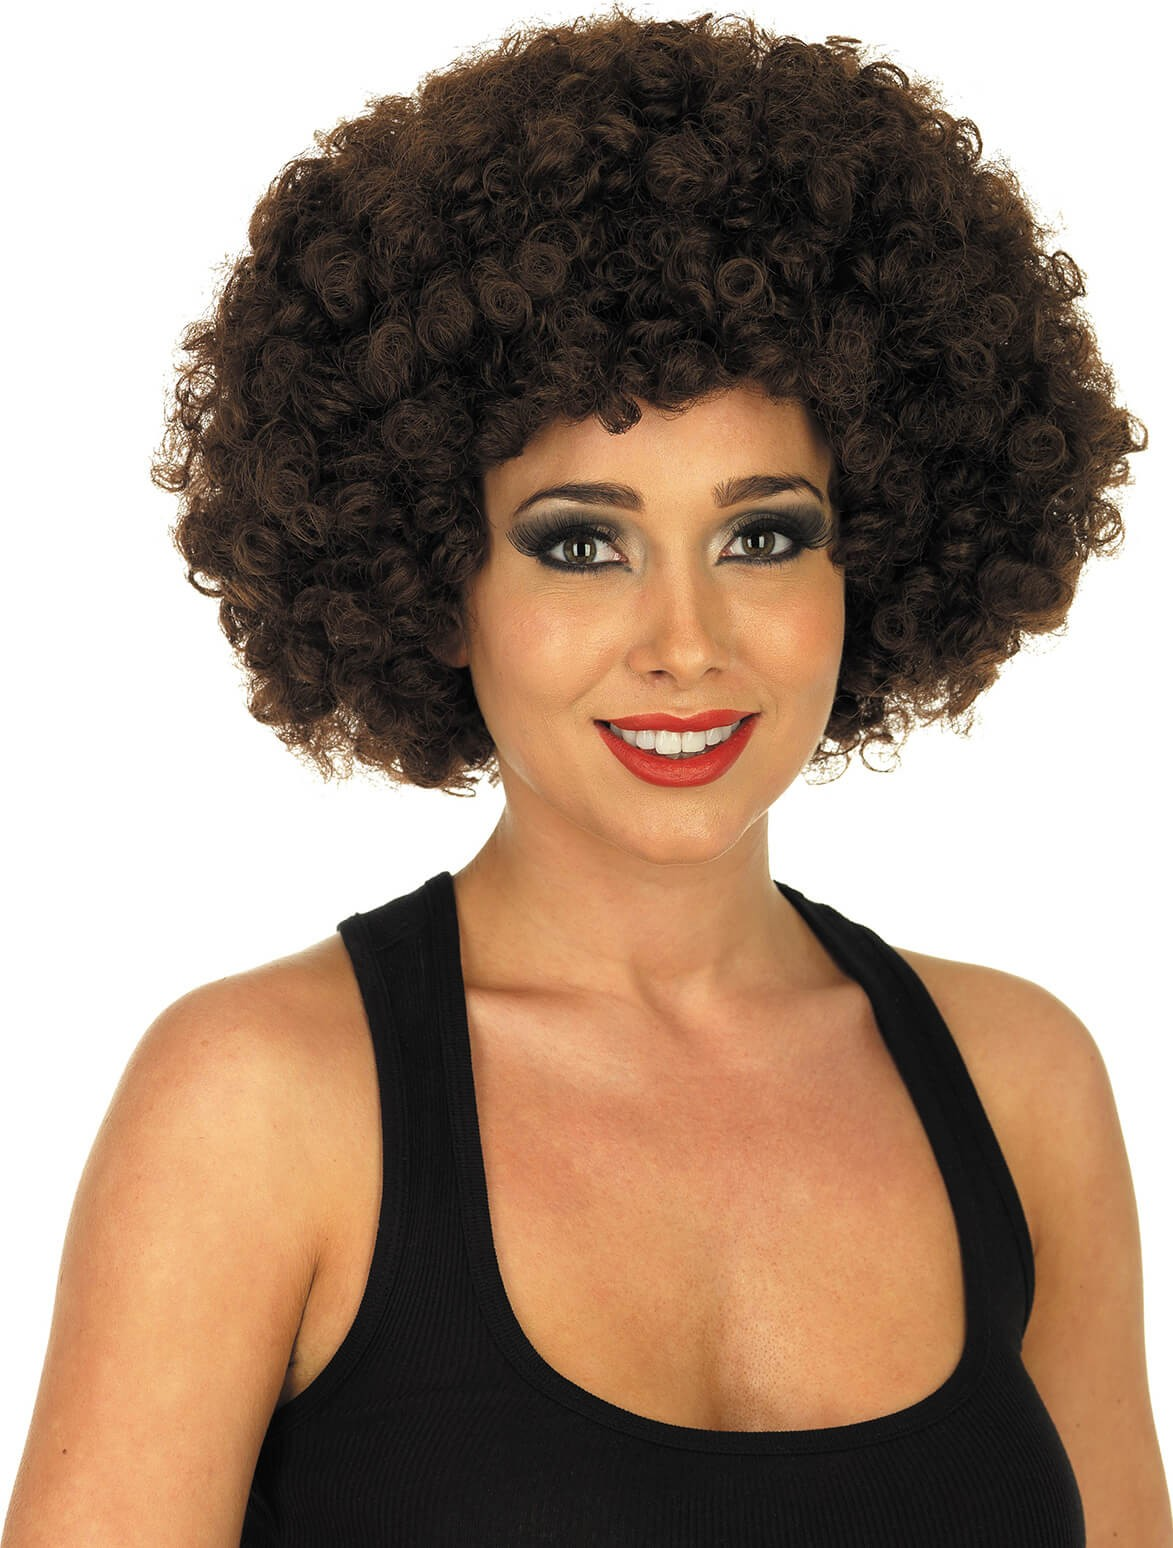 Brown Afro Wig (1970S Fancy Dress Wigs)